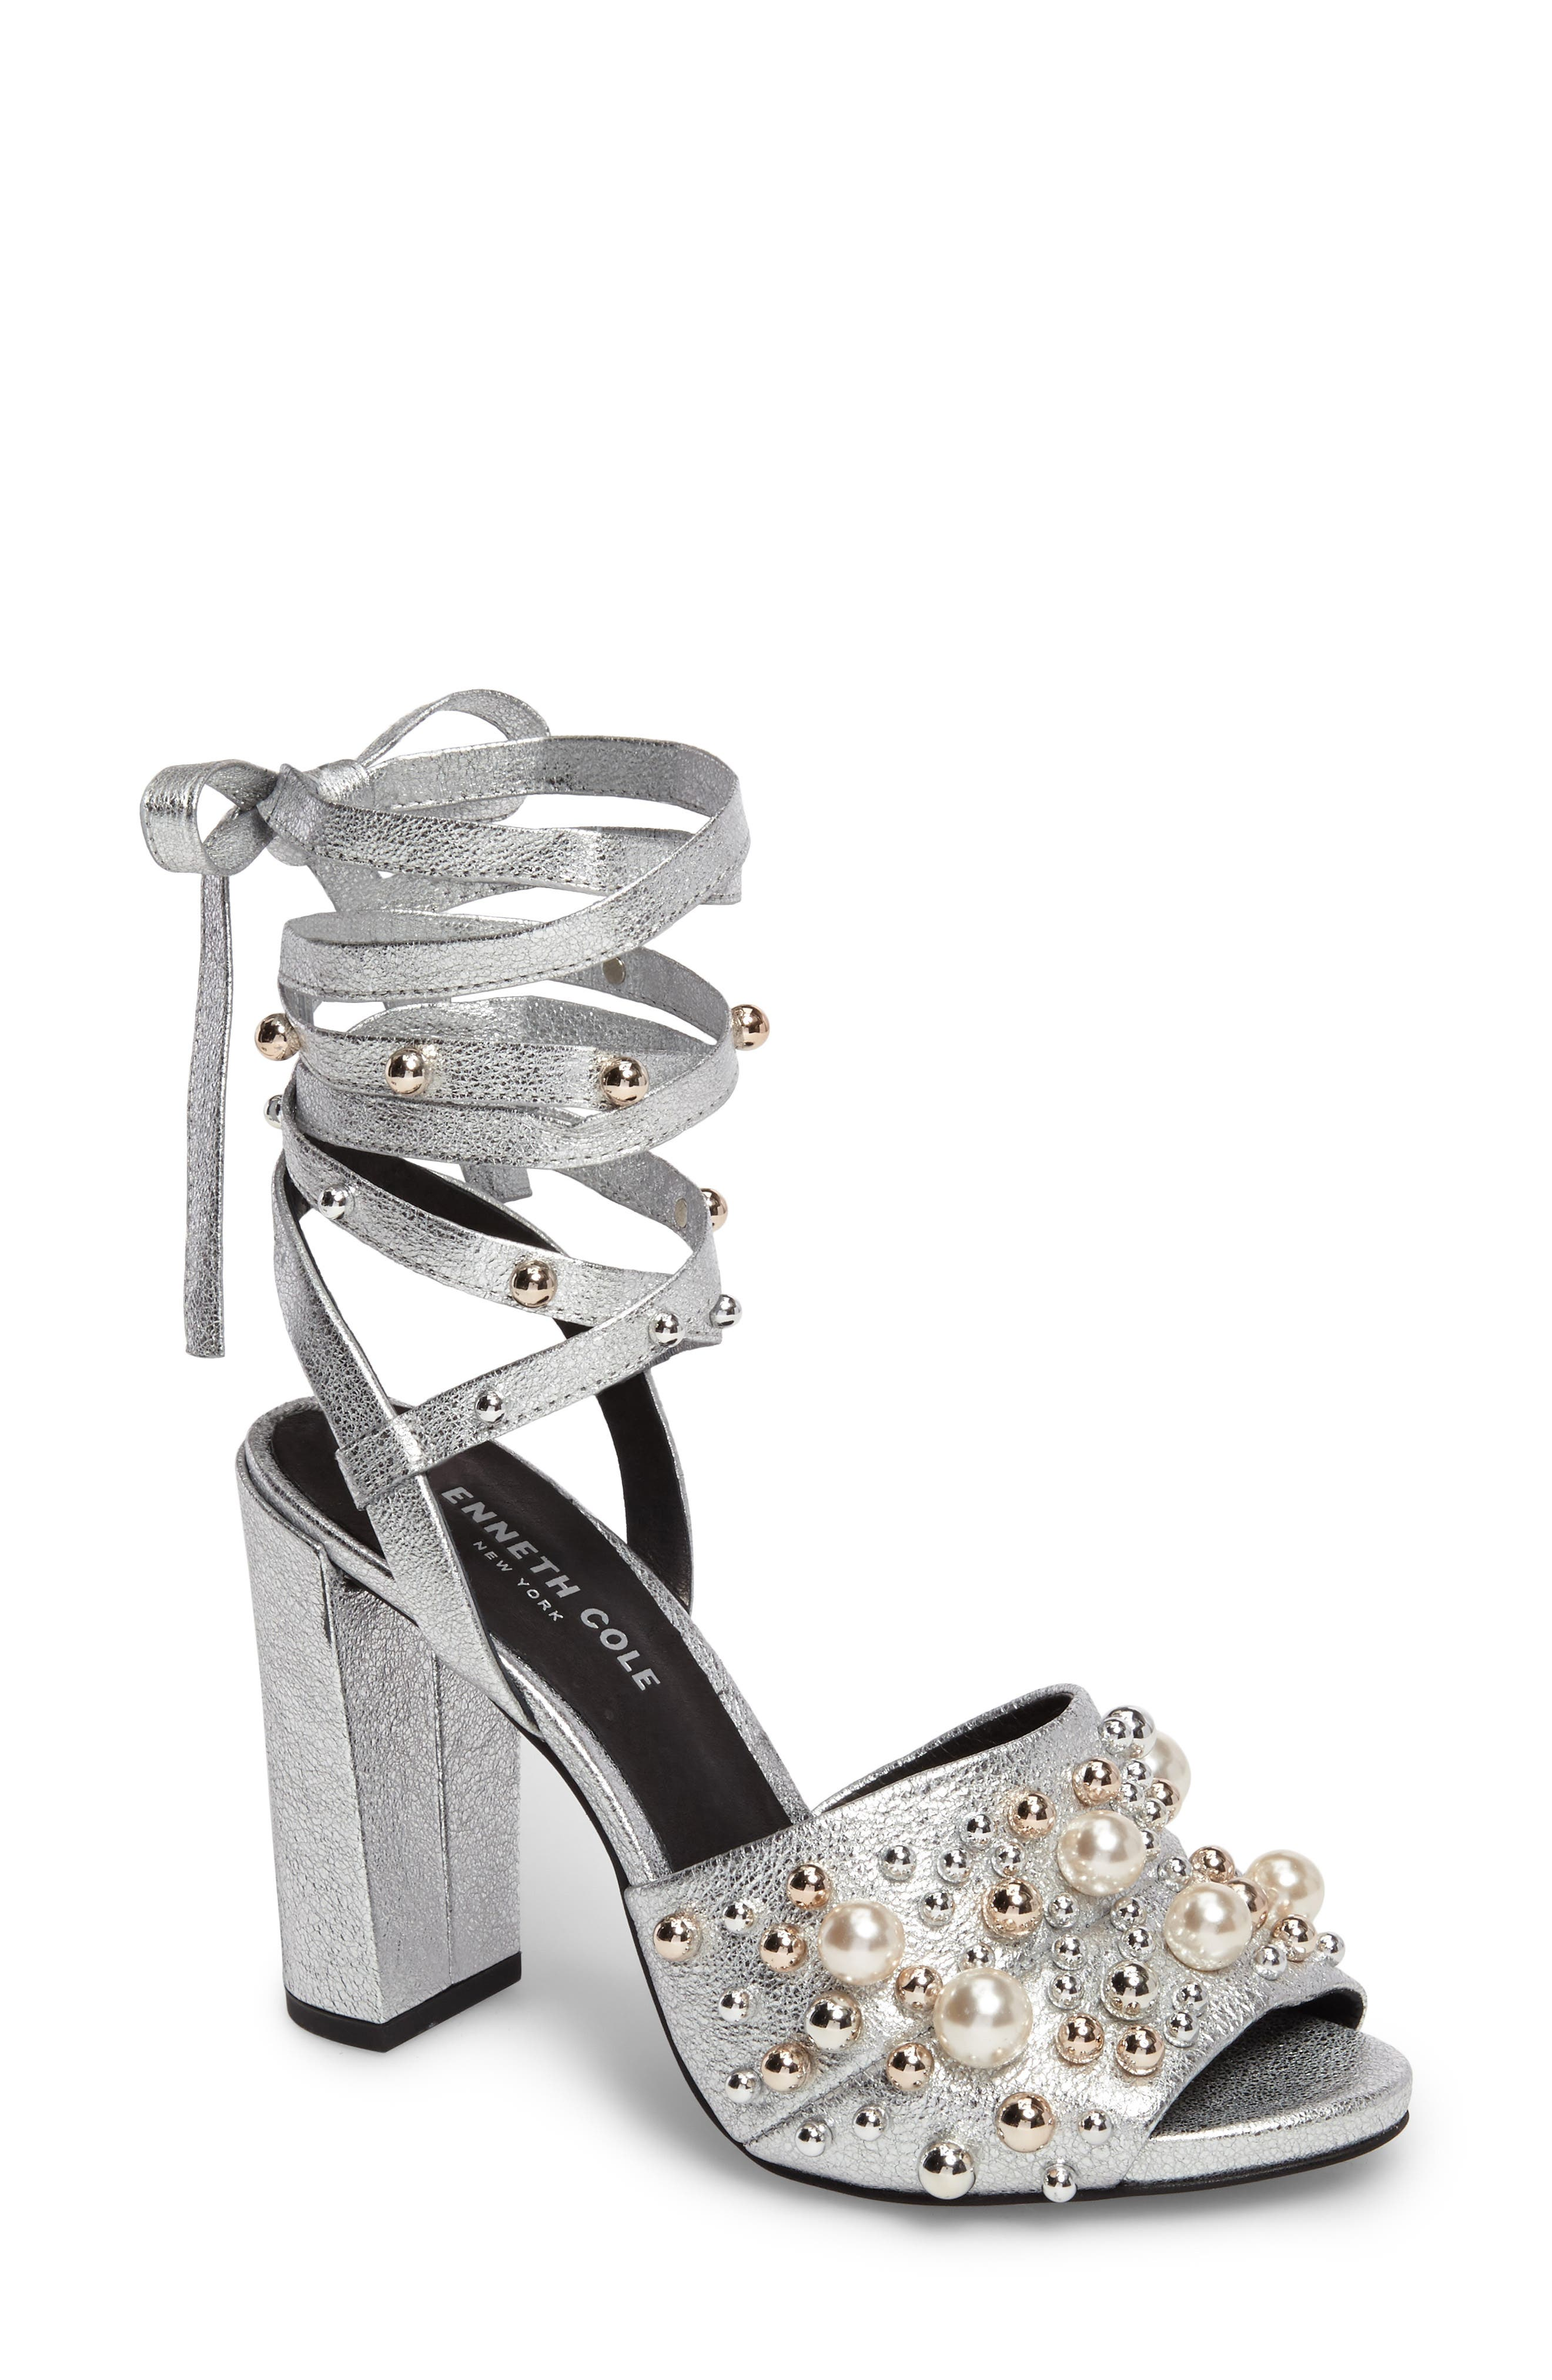 Dierdre Embellished Sandal,                         Main,                         color, Nickel Leather